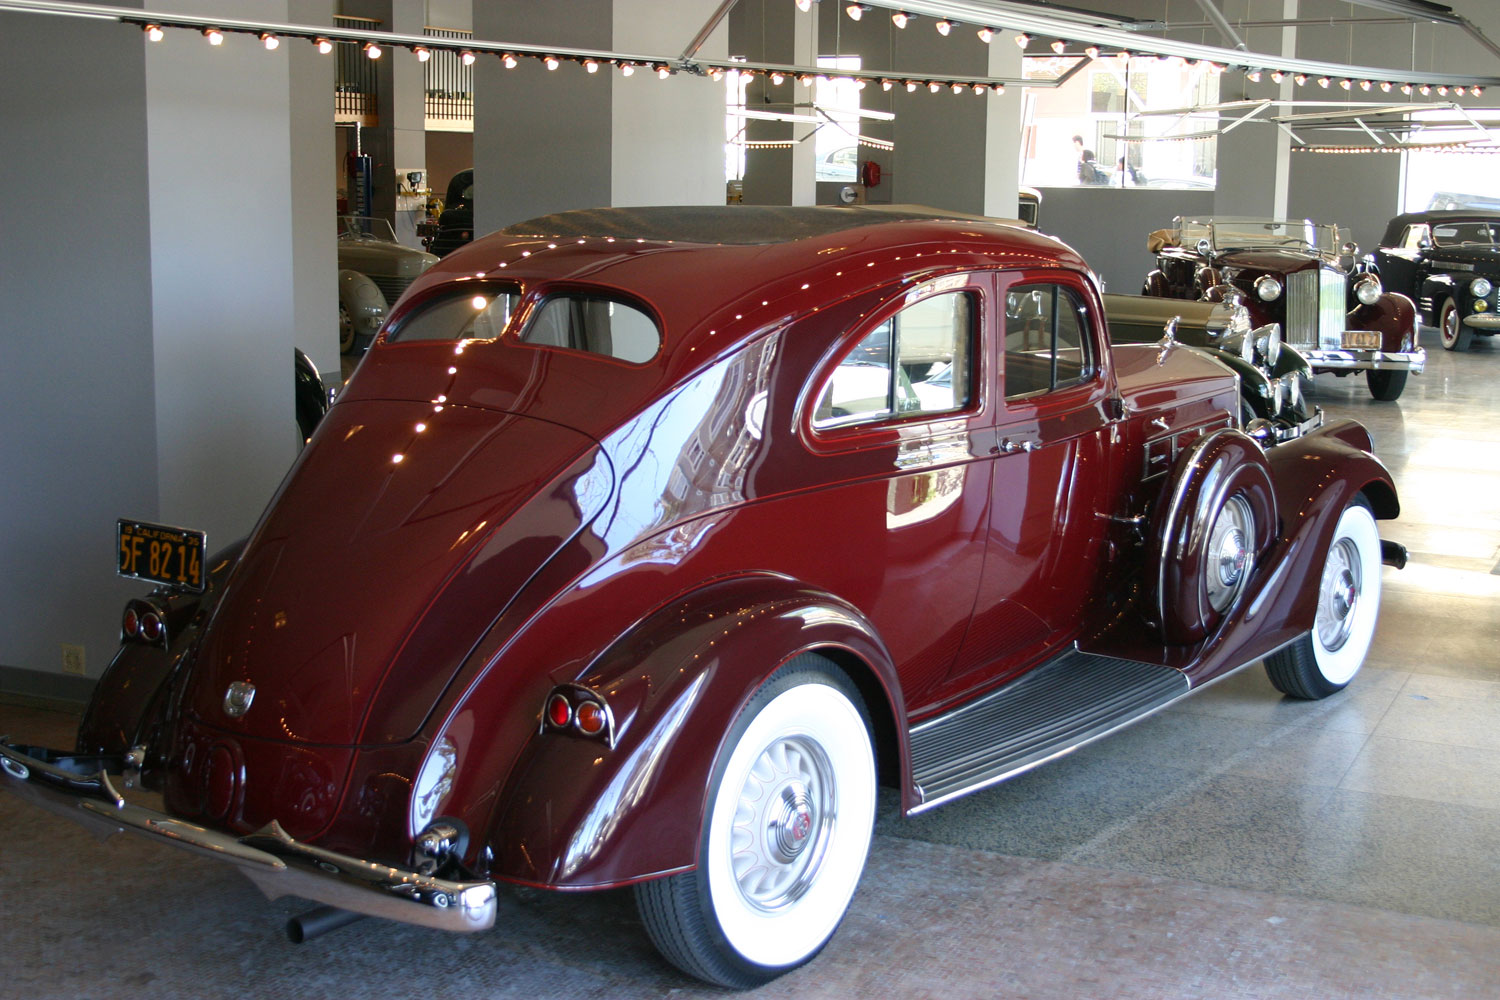 1935 Pierce-Arrow 12 Silver Arrow Coupe